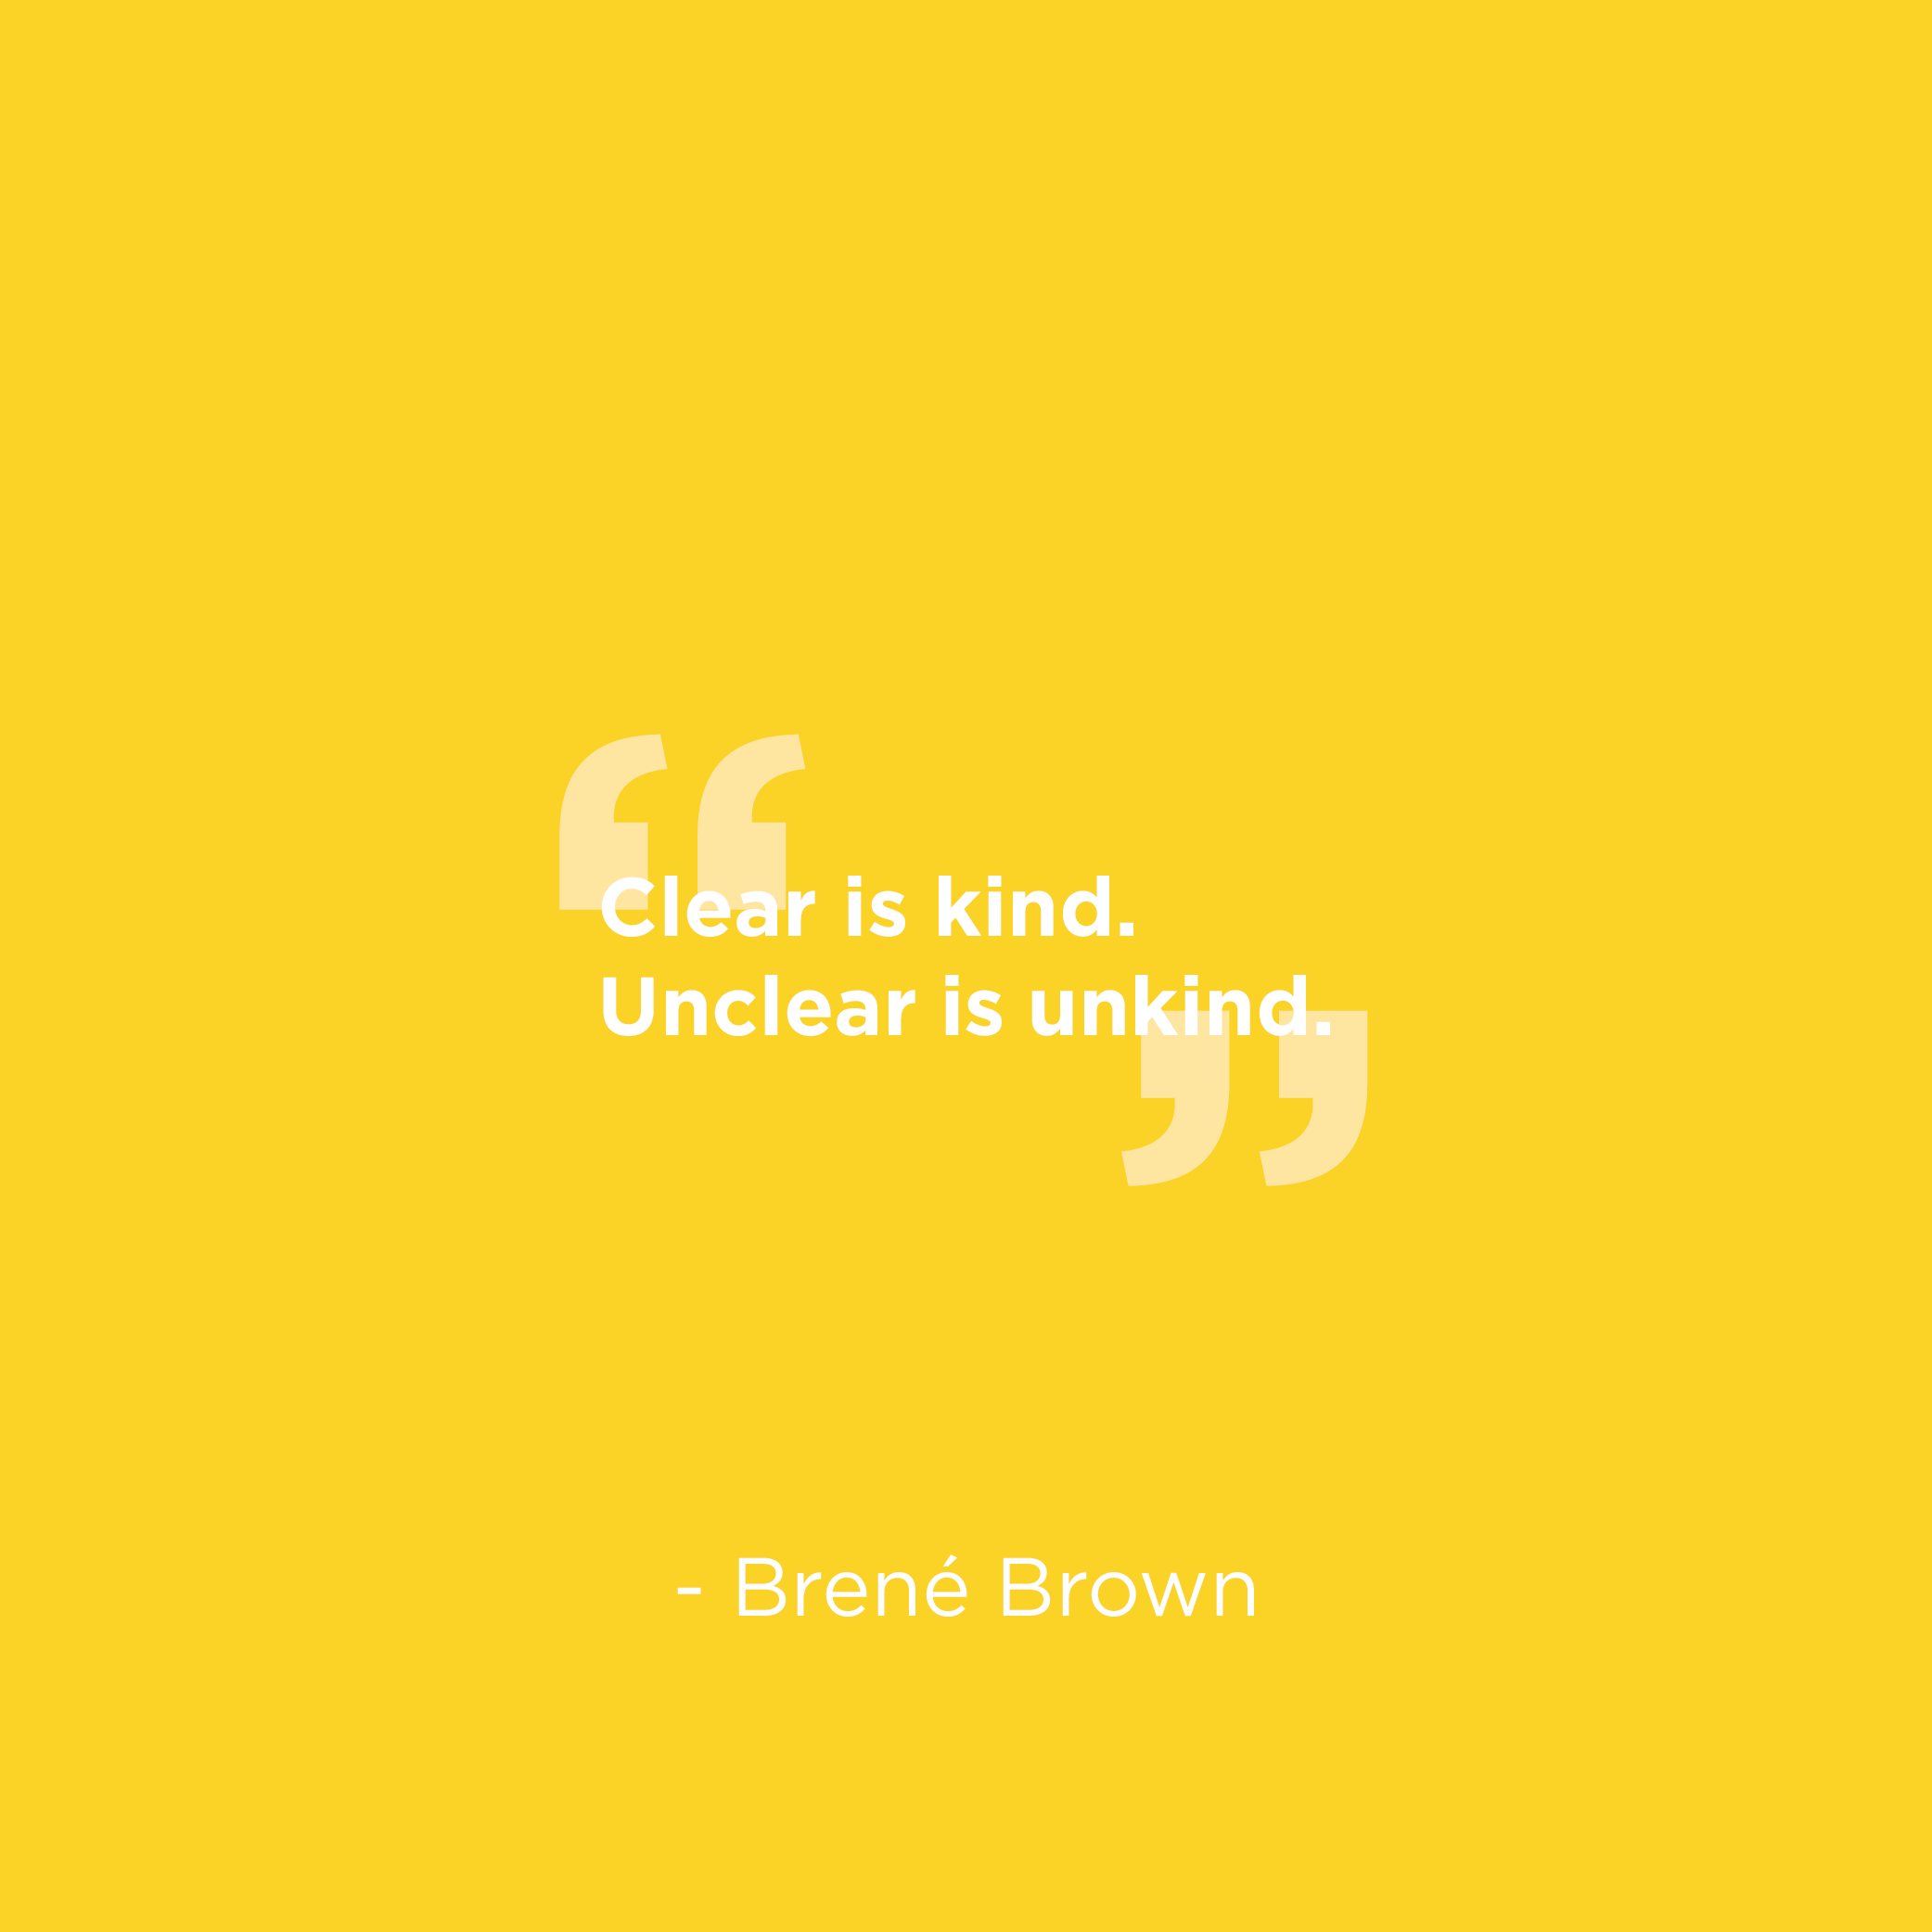 Brene Brown clear is kind quote.png